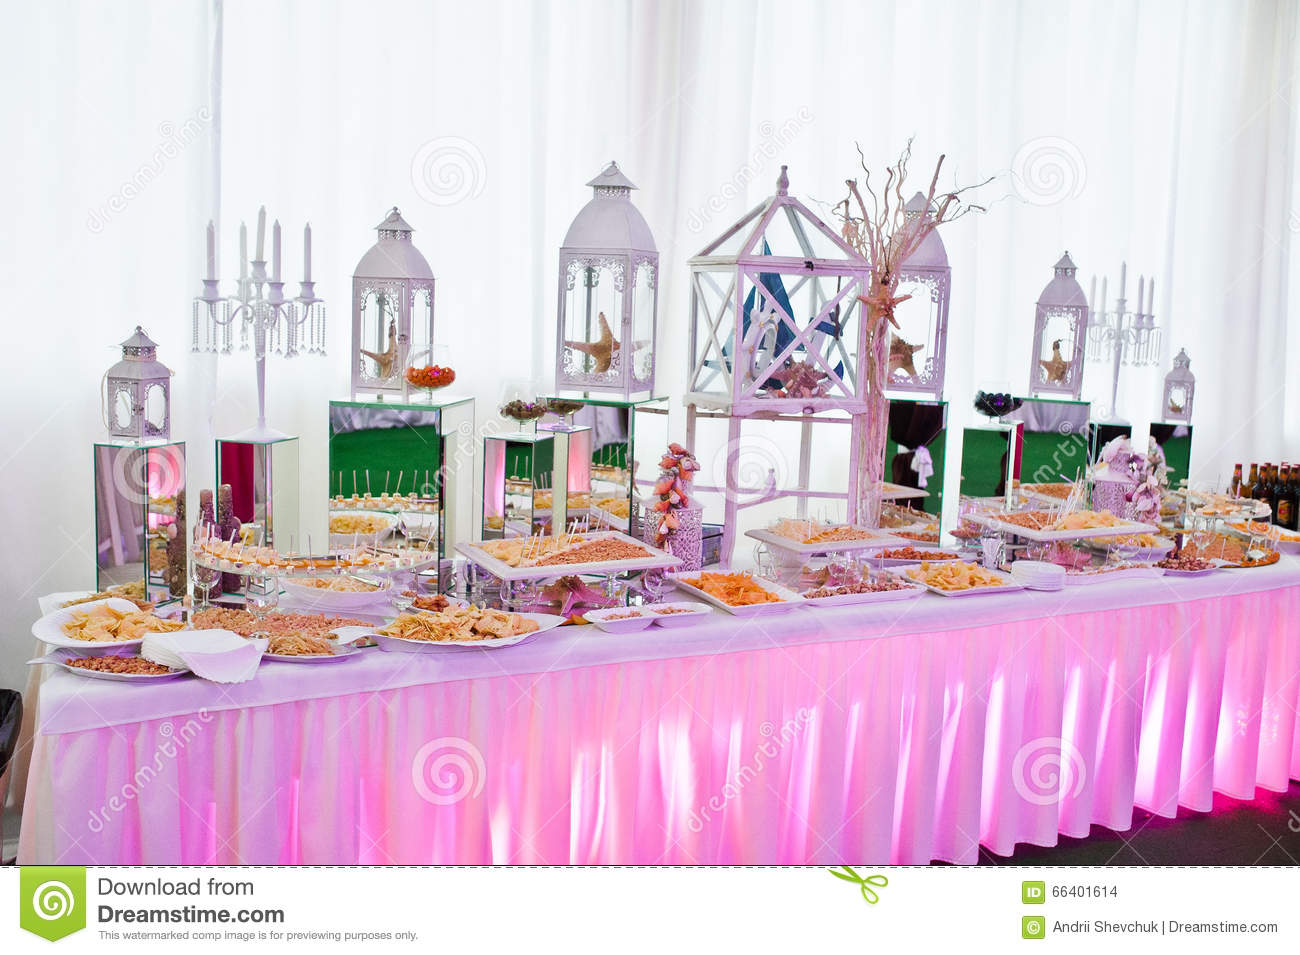 Awesome Wedding Reception Of Food And Drink Stock Photo - Image of ...